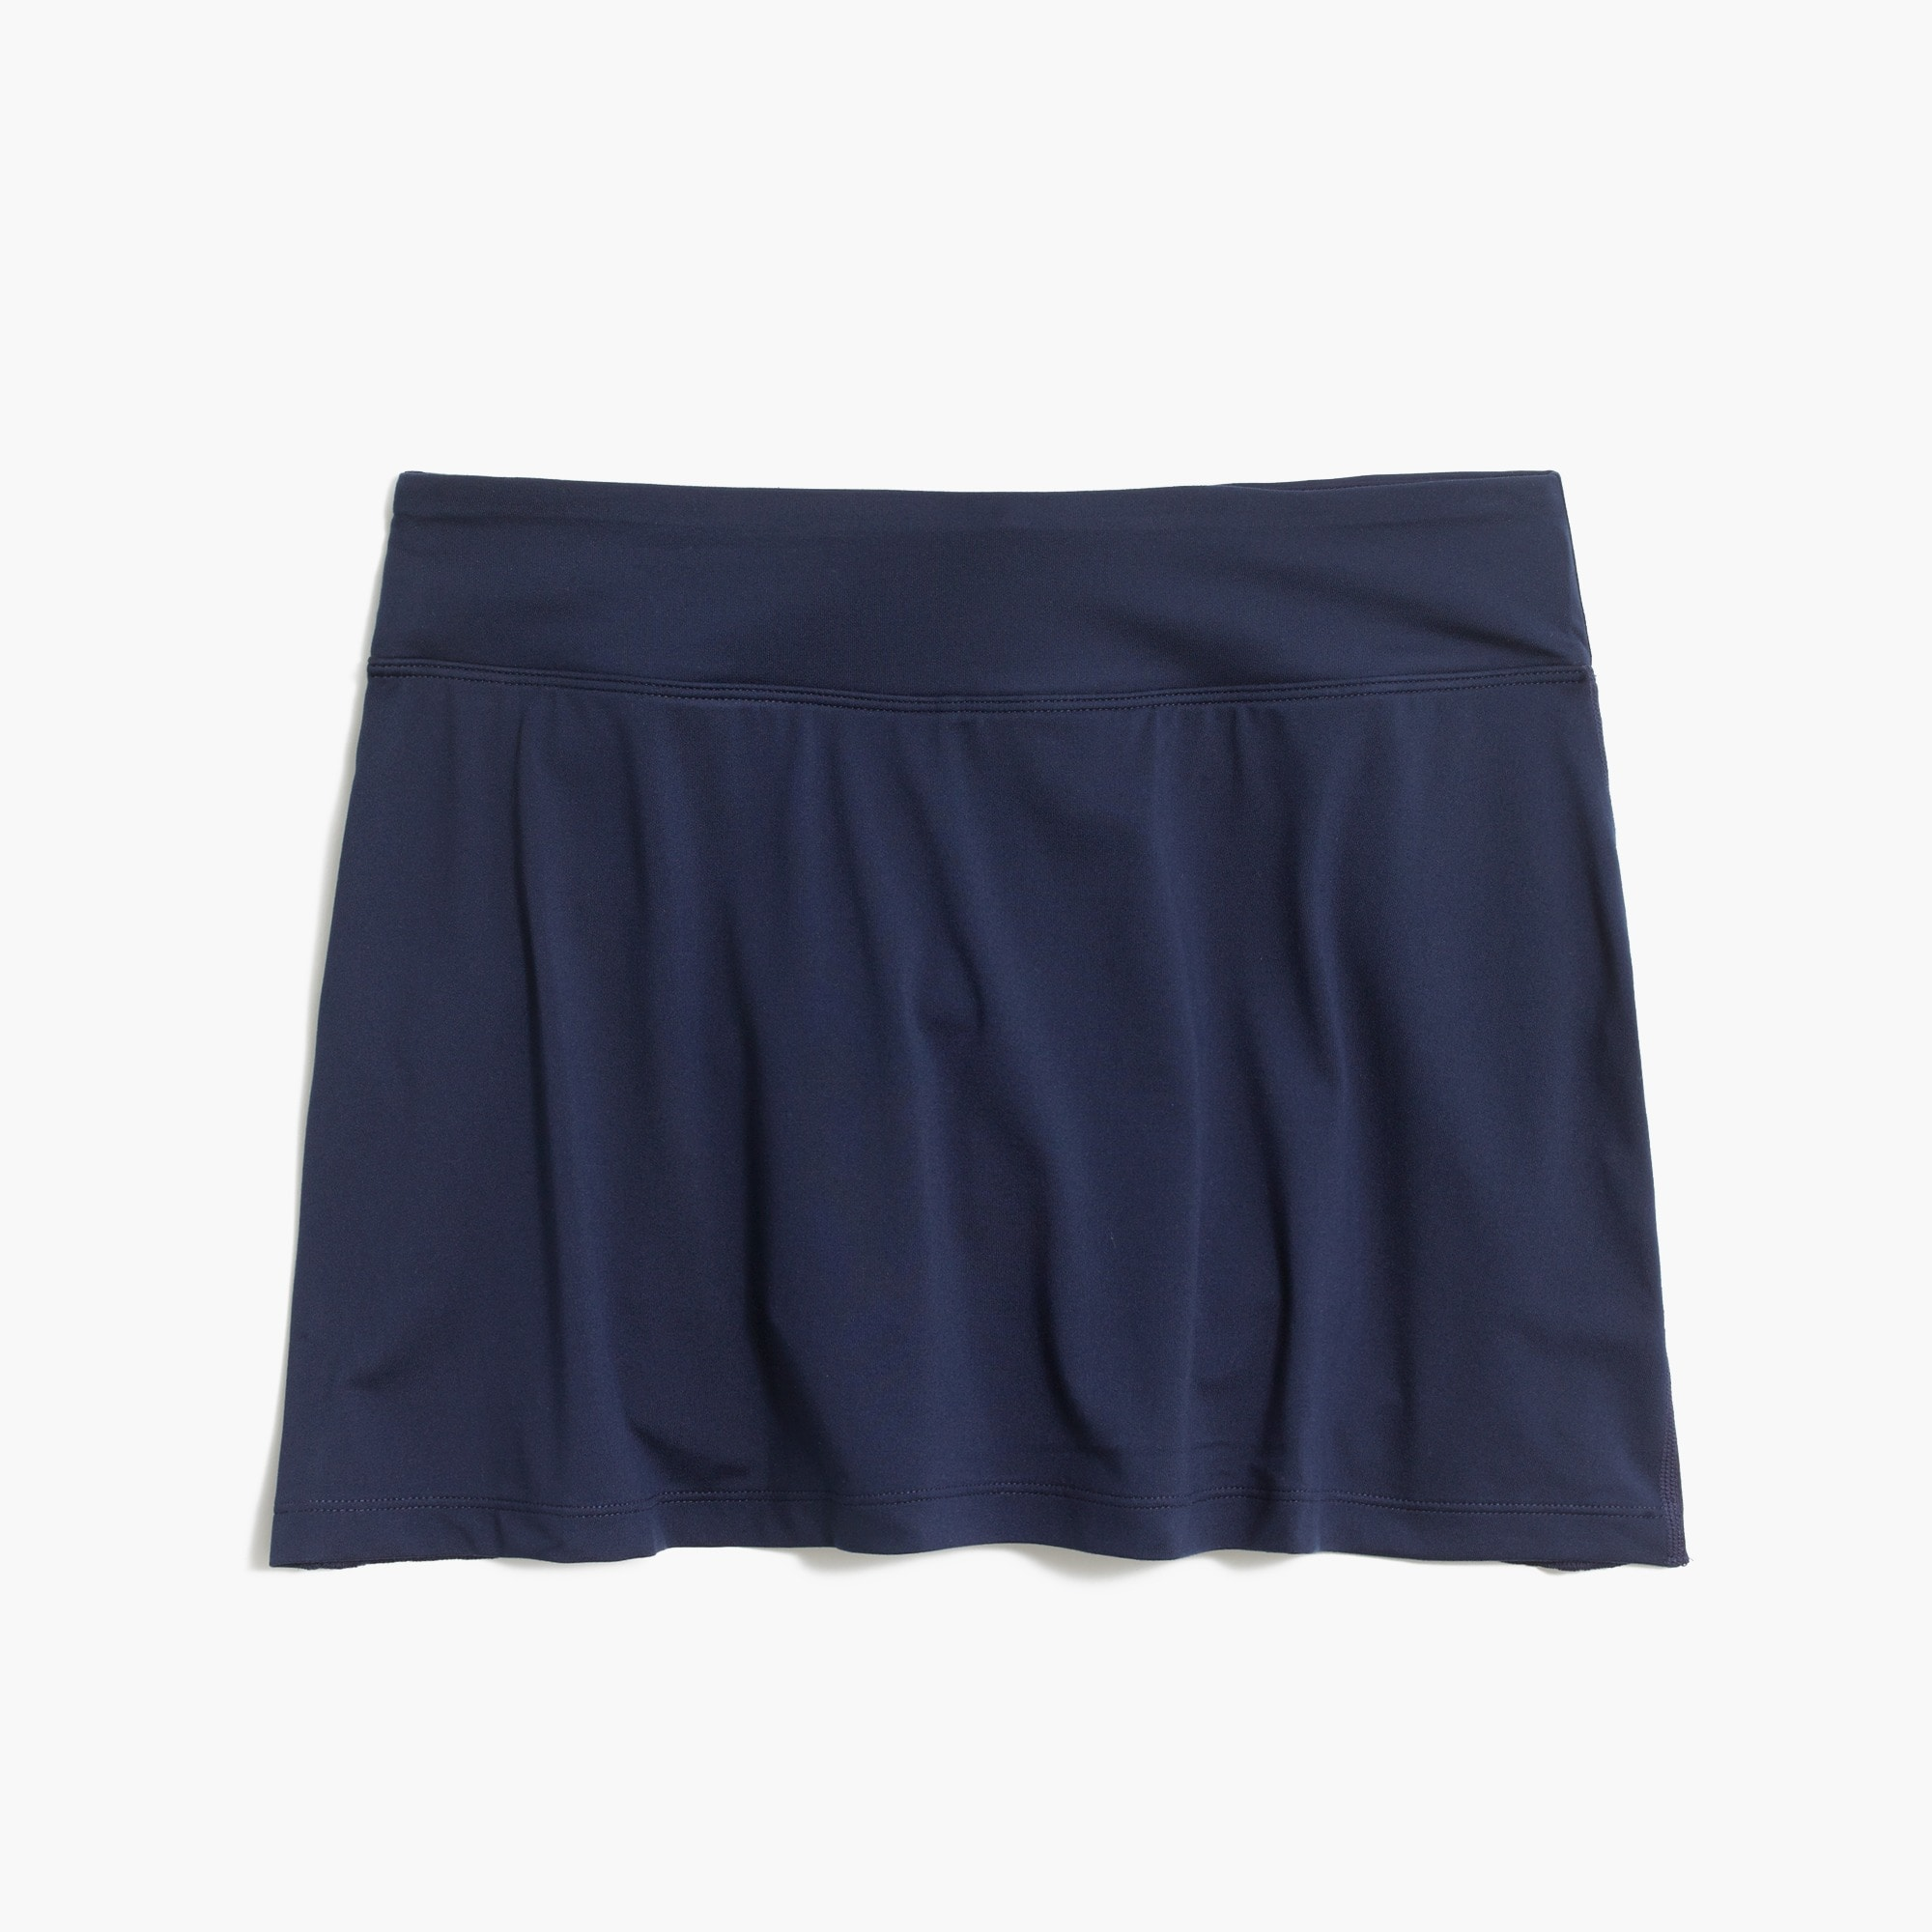 New Balance® for J.Crew tennis skirt